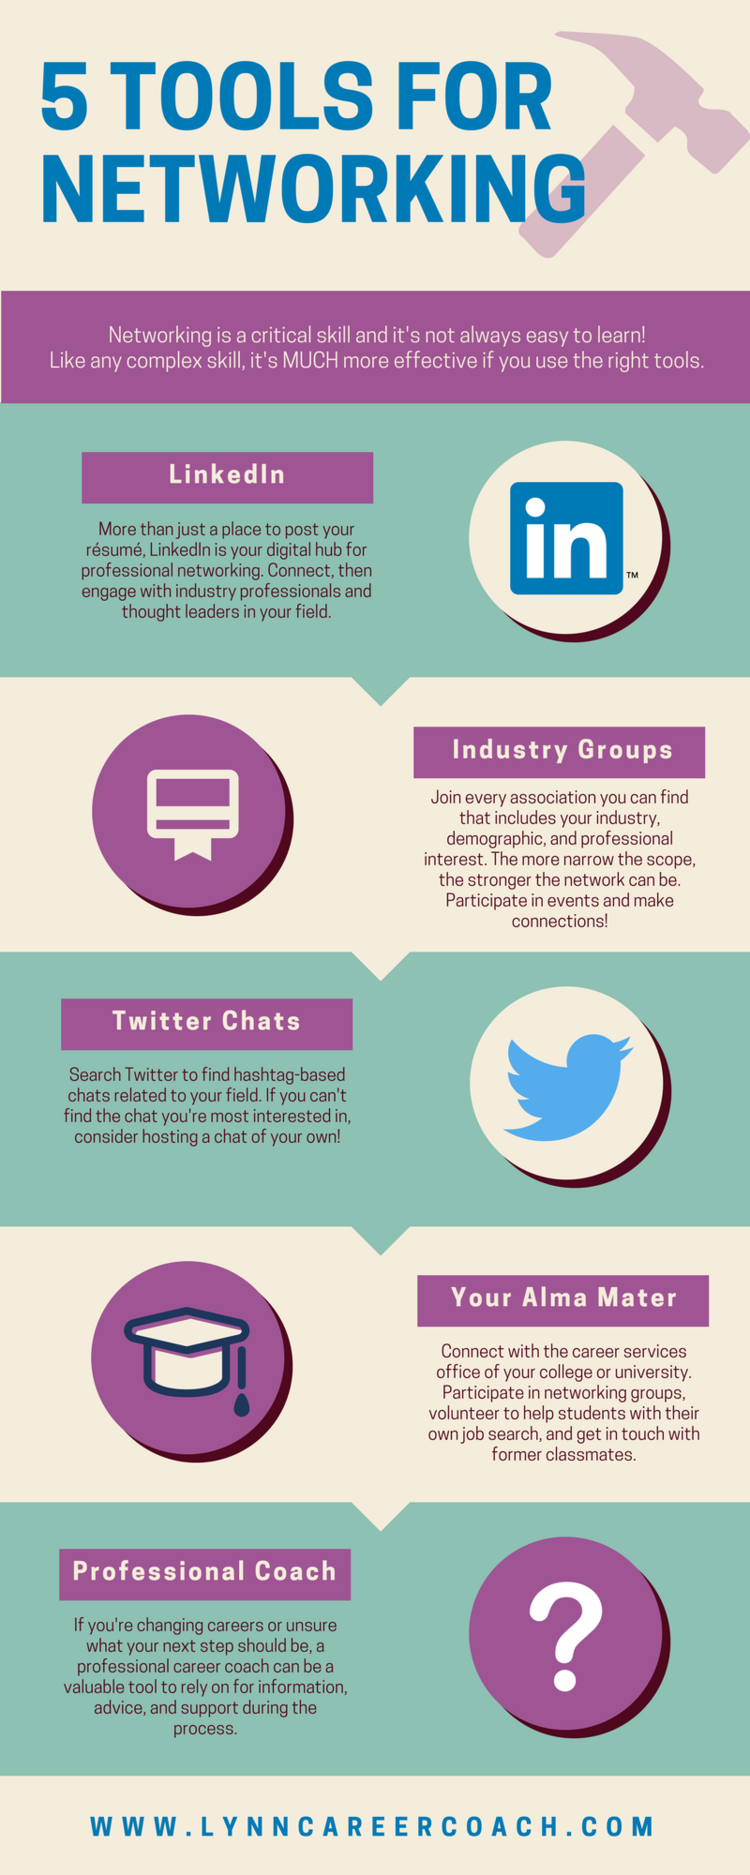 here are 5 tools to help you develop your networking chops if you find it helpful please share with your network